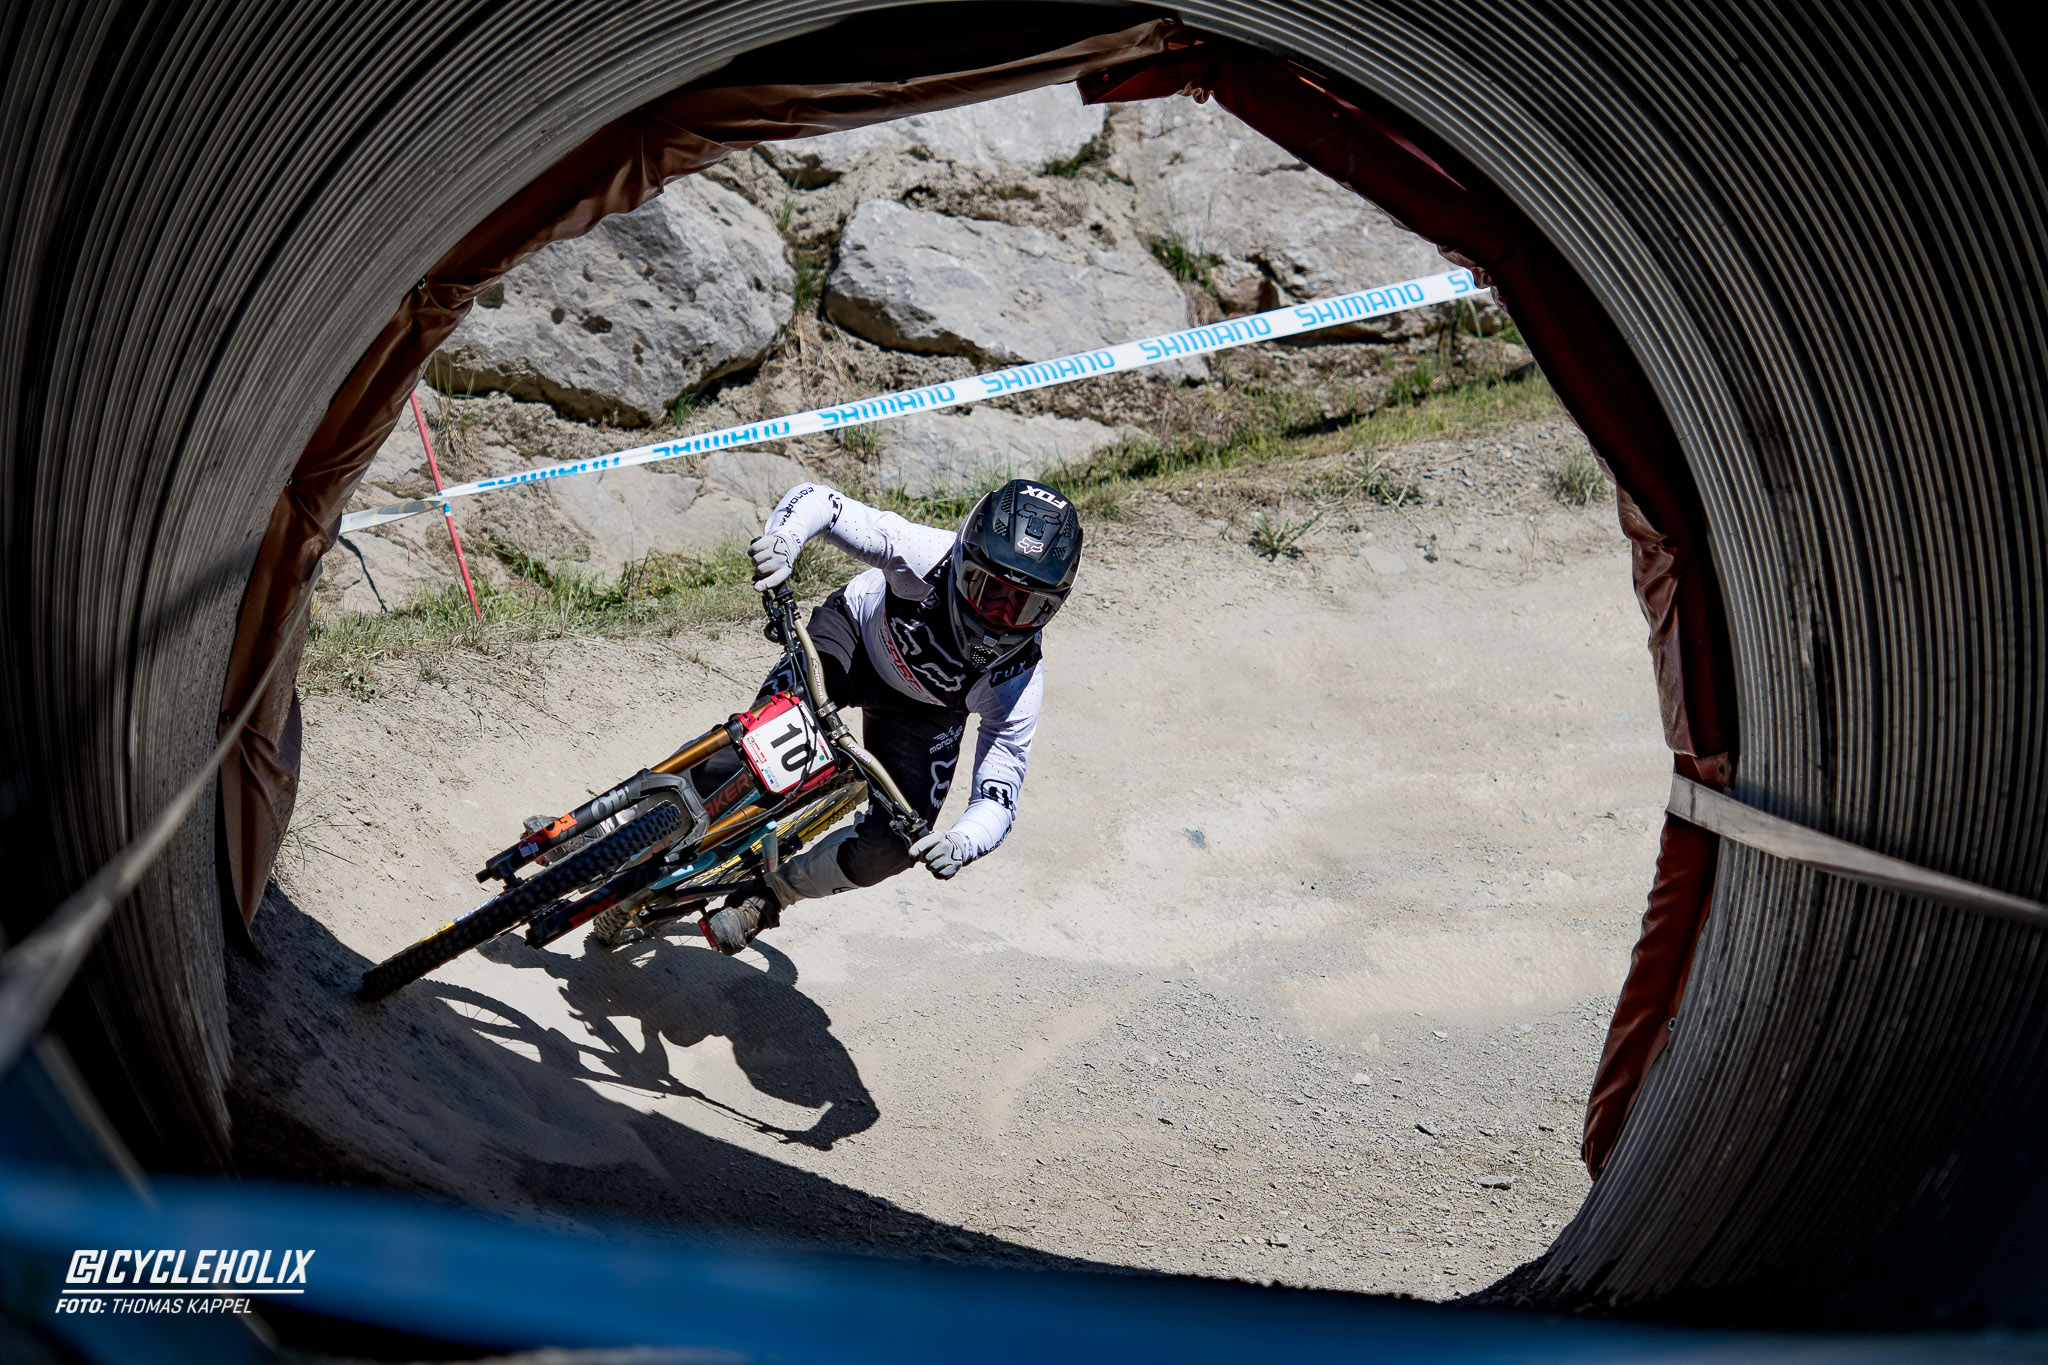 2019 Downhill Worldcup Leogang Finale Action FR 1 Cycleholix